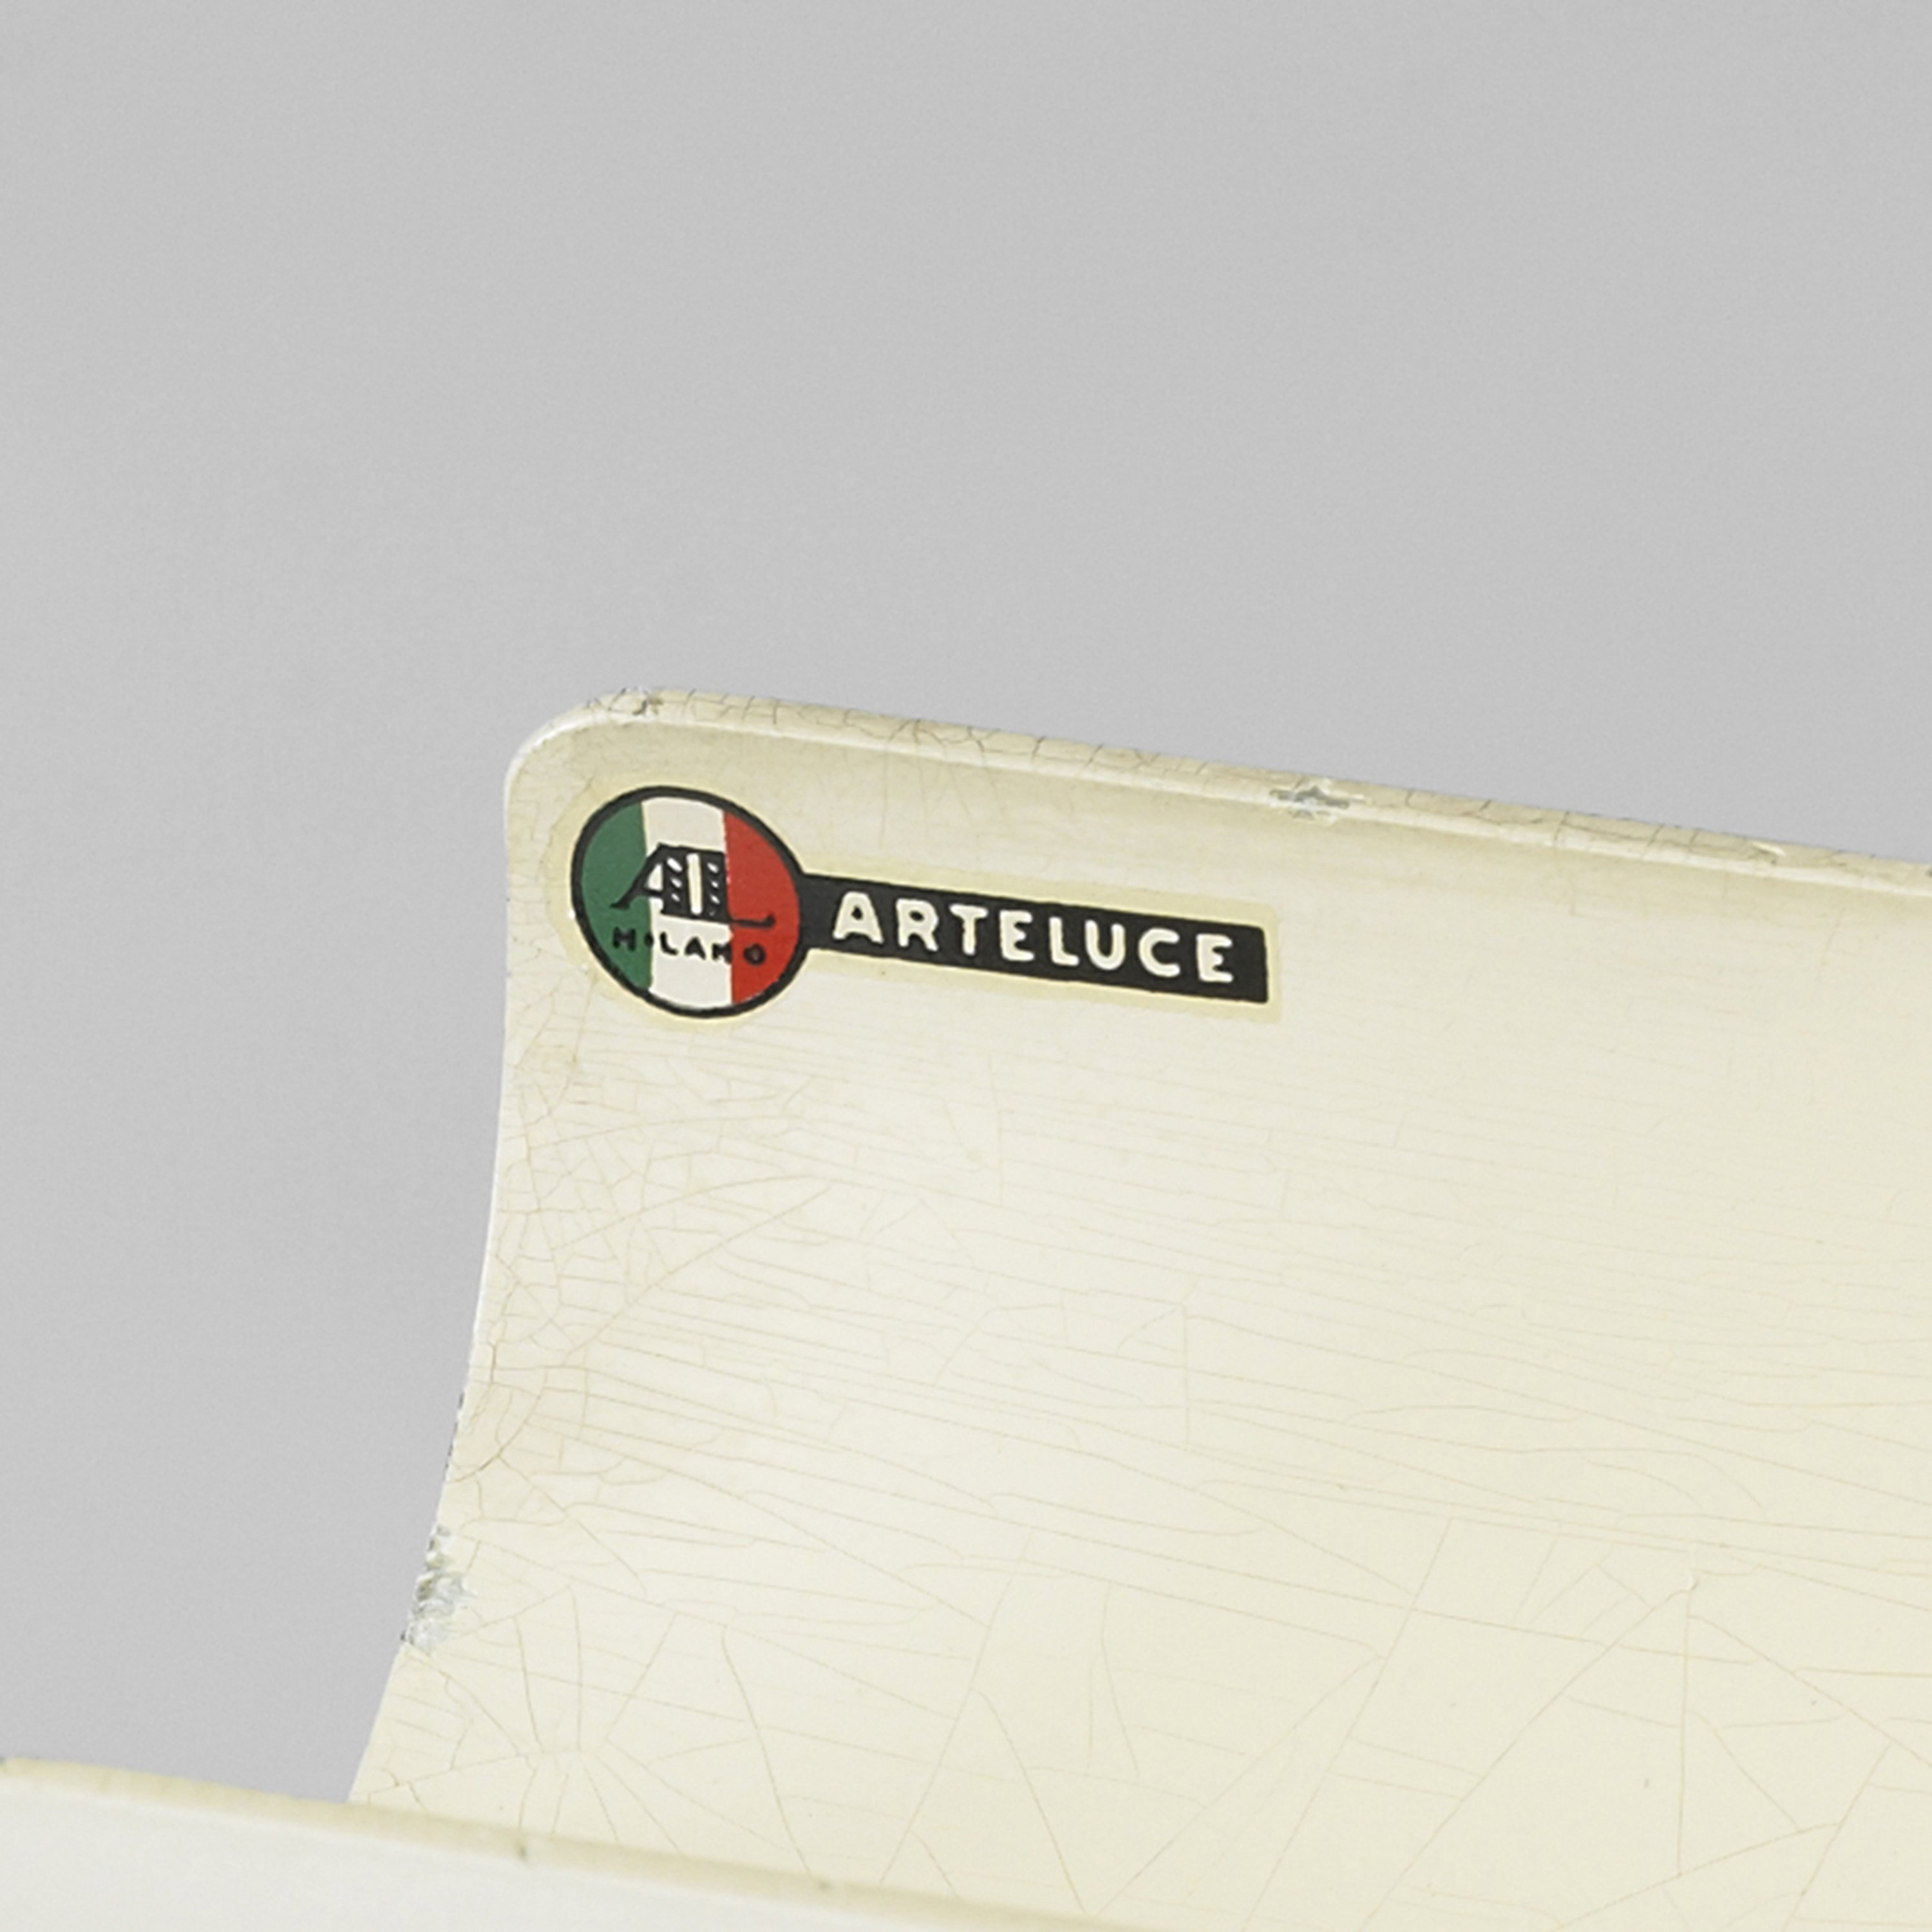 Arteluce Vintage Log Italian furniture and design gallery Casati Gallery